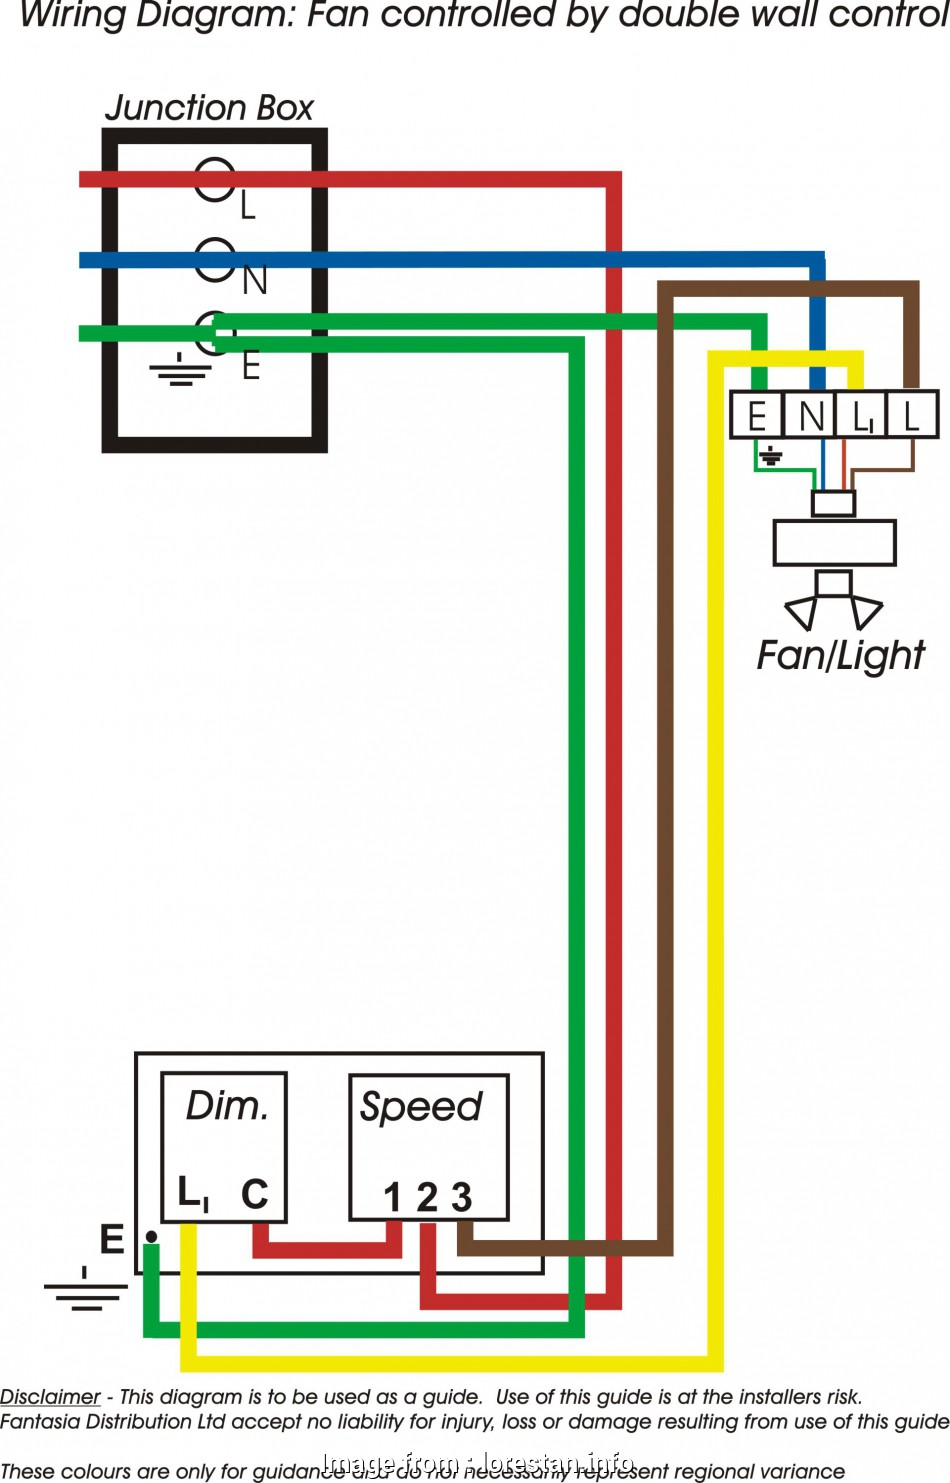 electrical wiring ceiling fan with light Ceiling, Electrical Wiring Diagram, LoreStan.info 18 Nice Electrical Wiring Ceiling, With Light Galleries